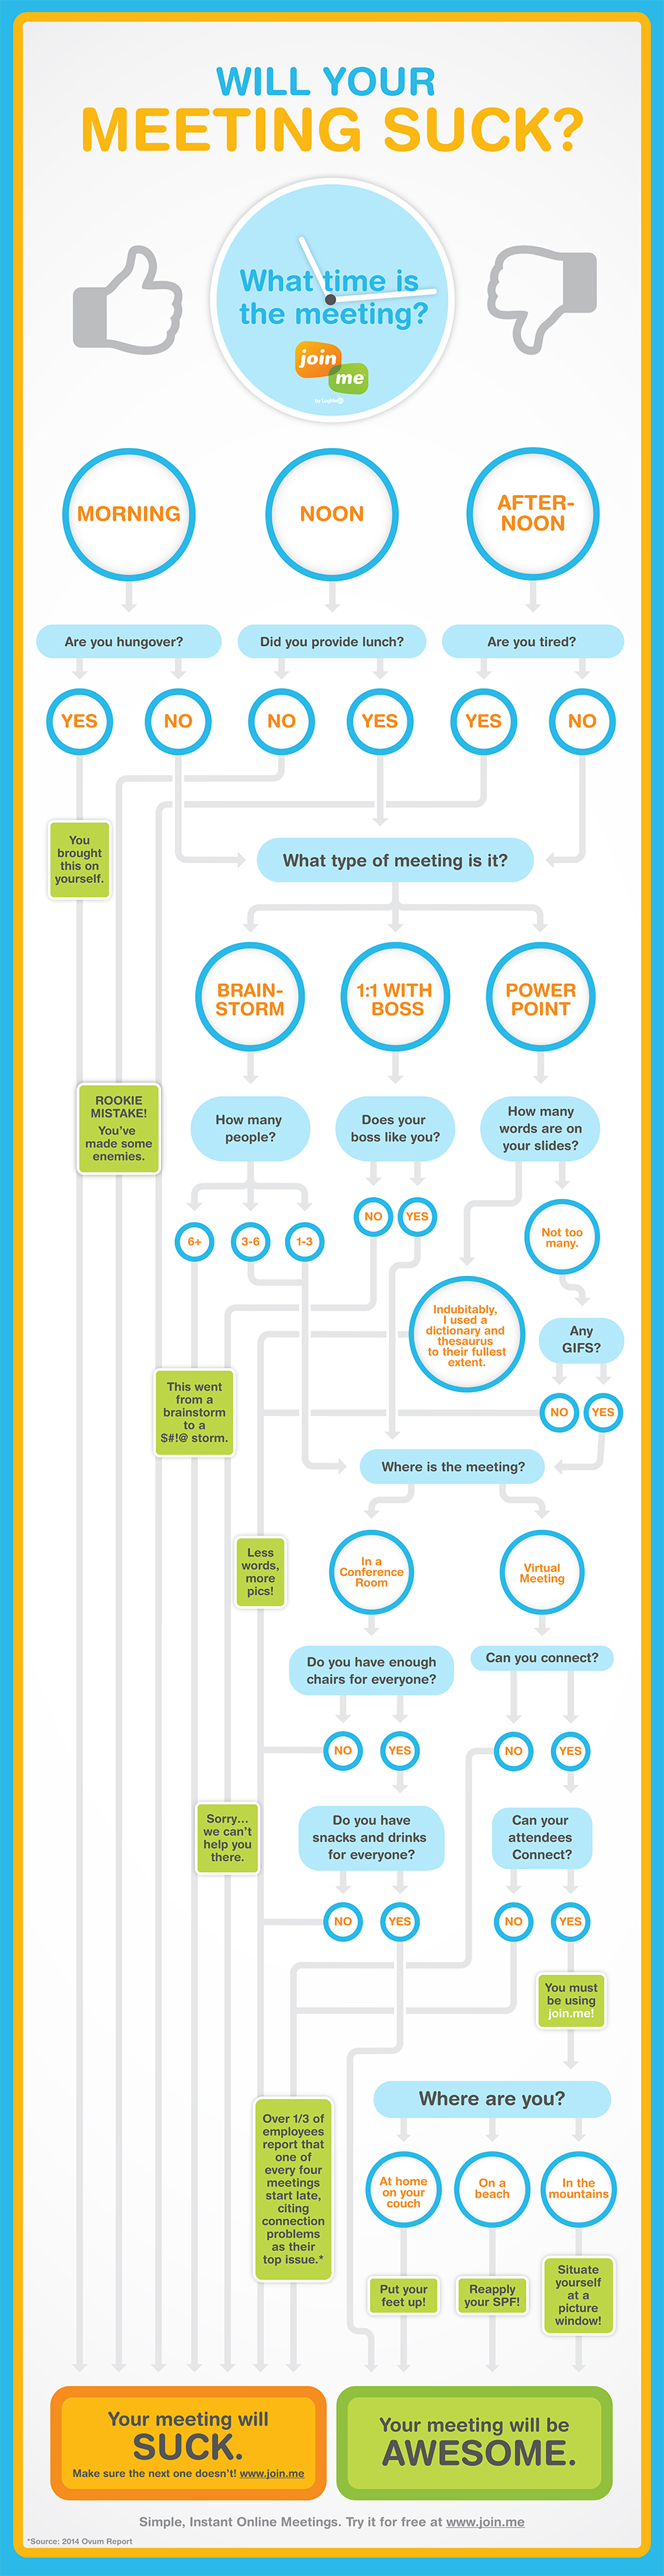 Will Your Meeting Suck? infographic